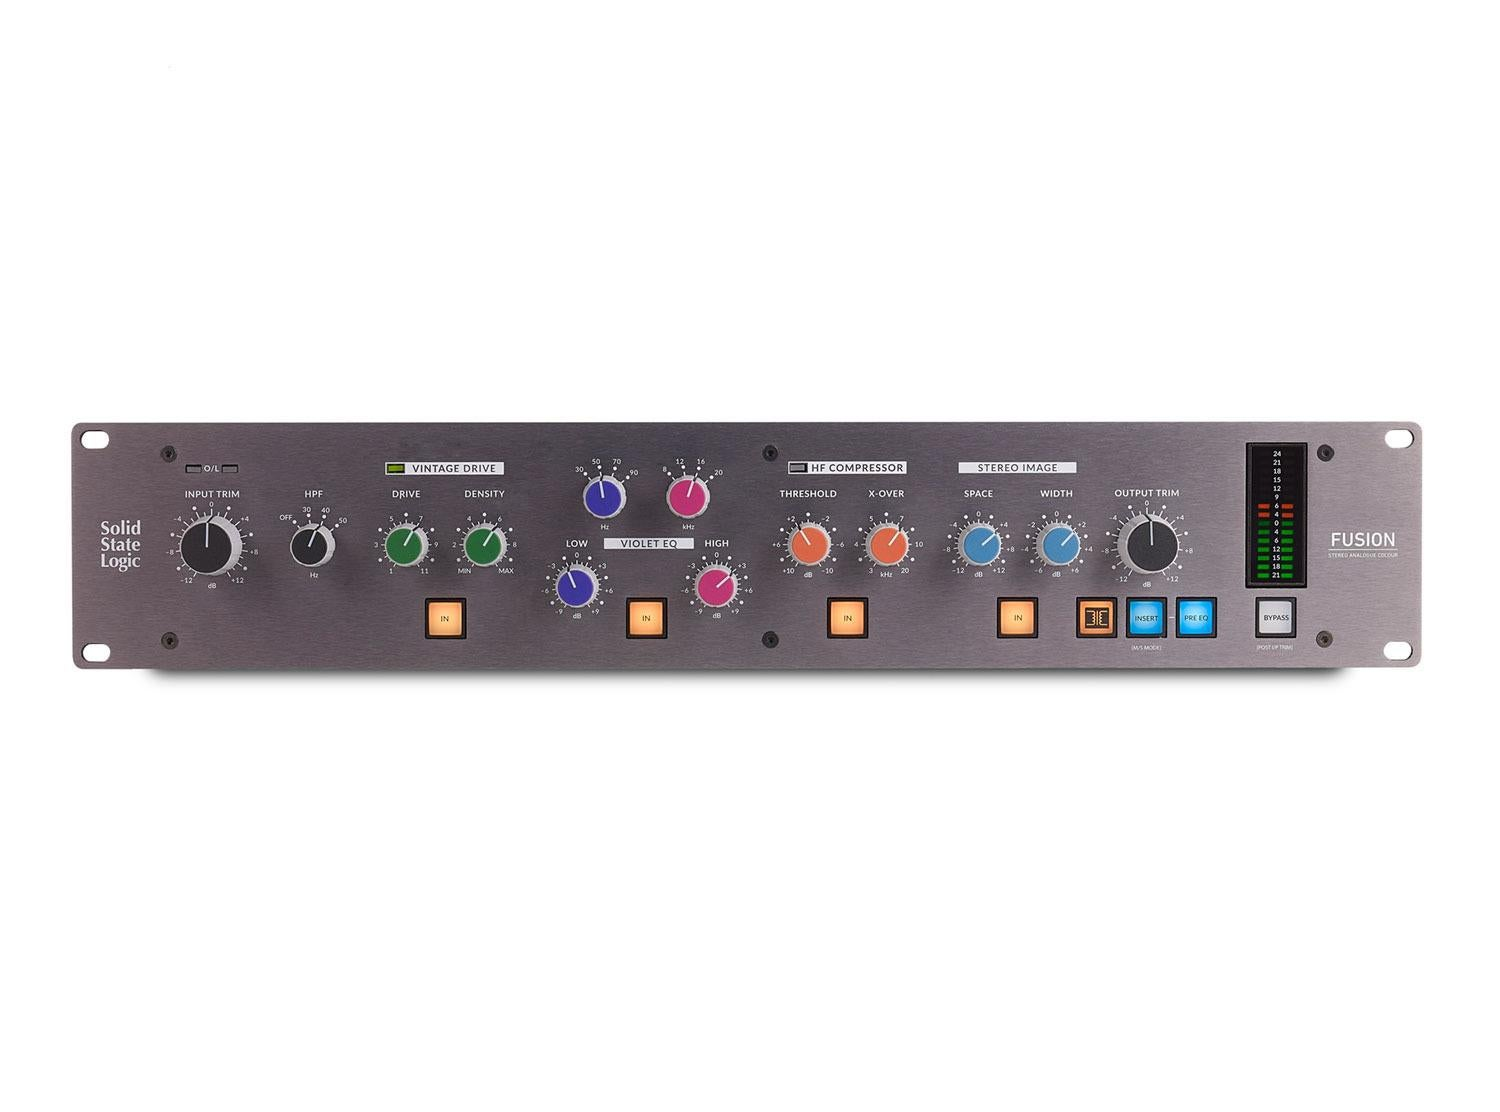 Solid State Logic Fusion Stereo Outboard Processor